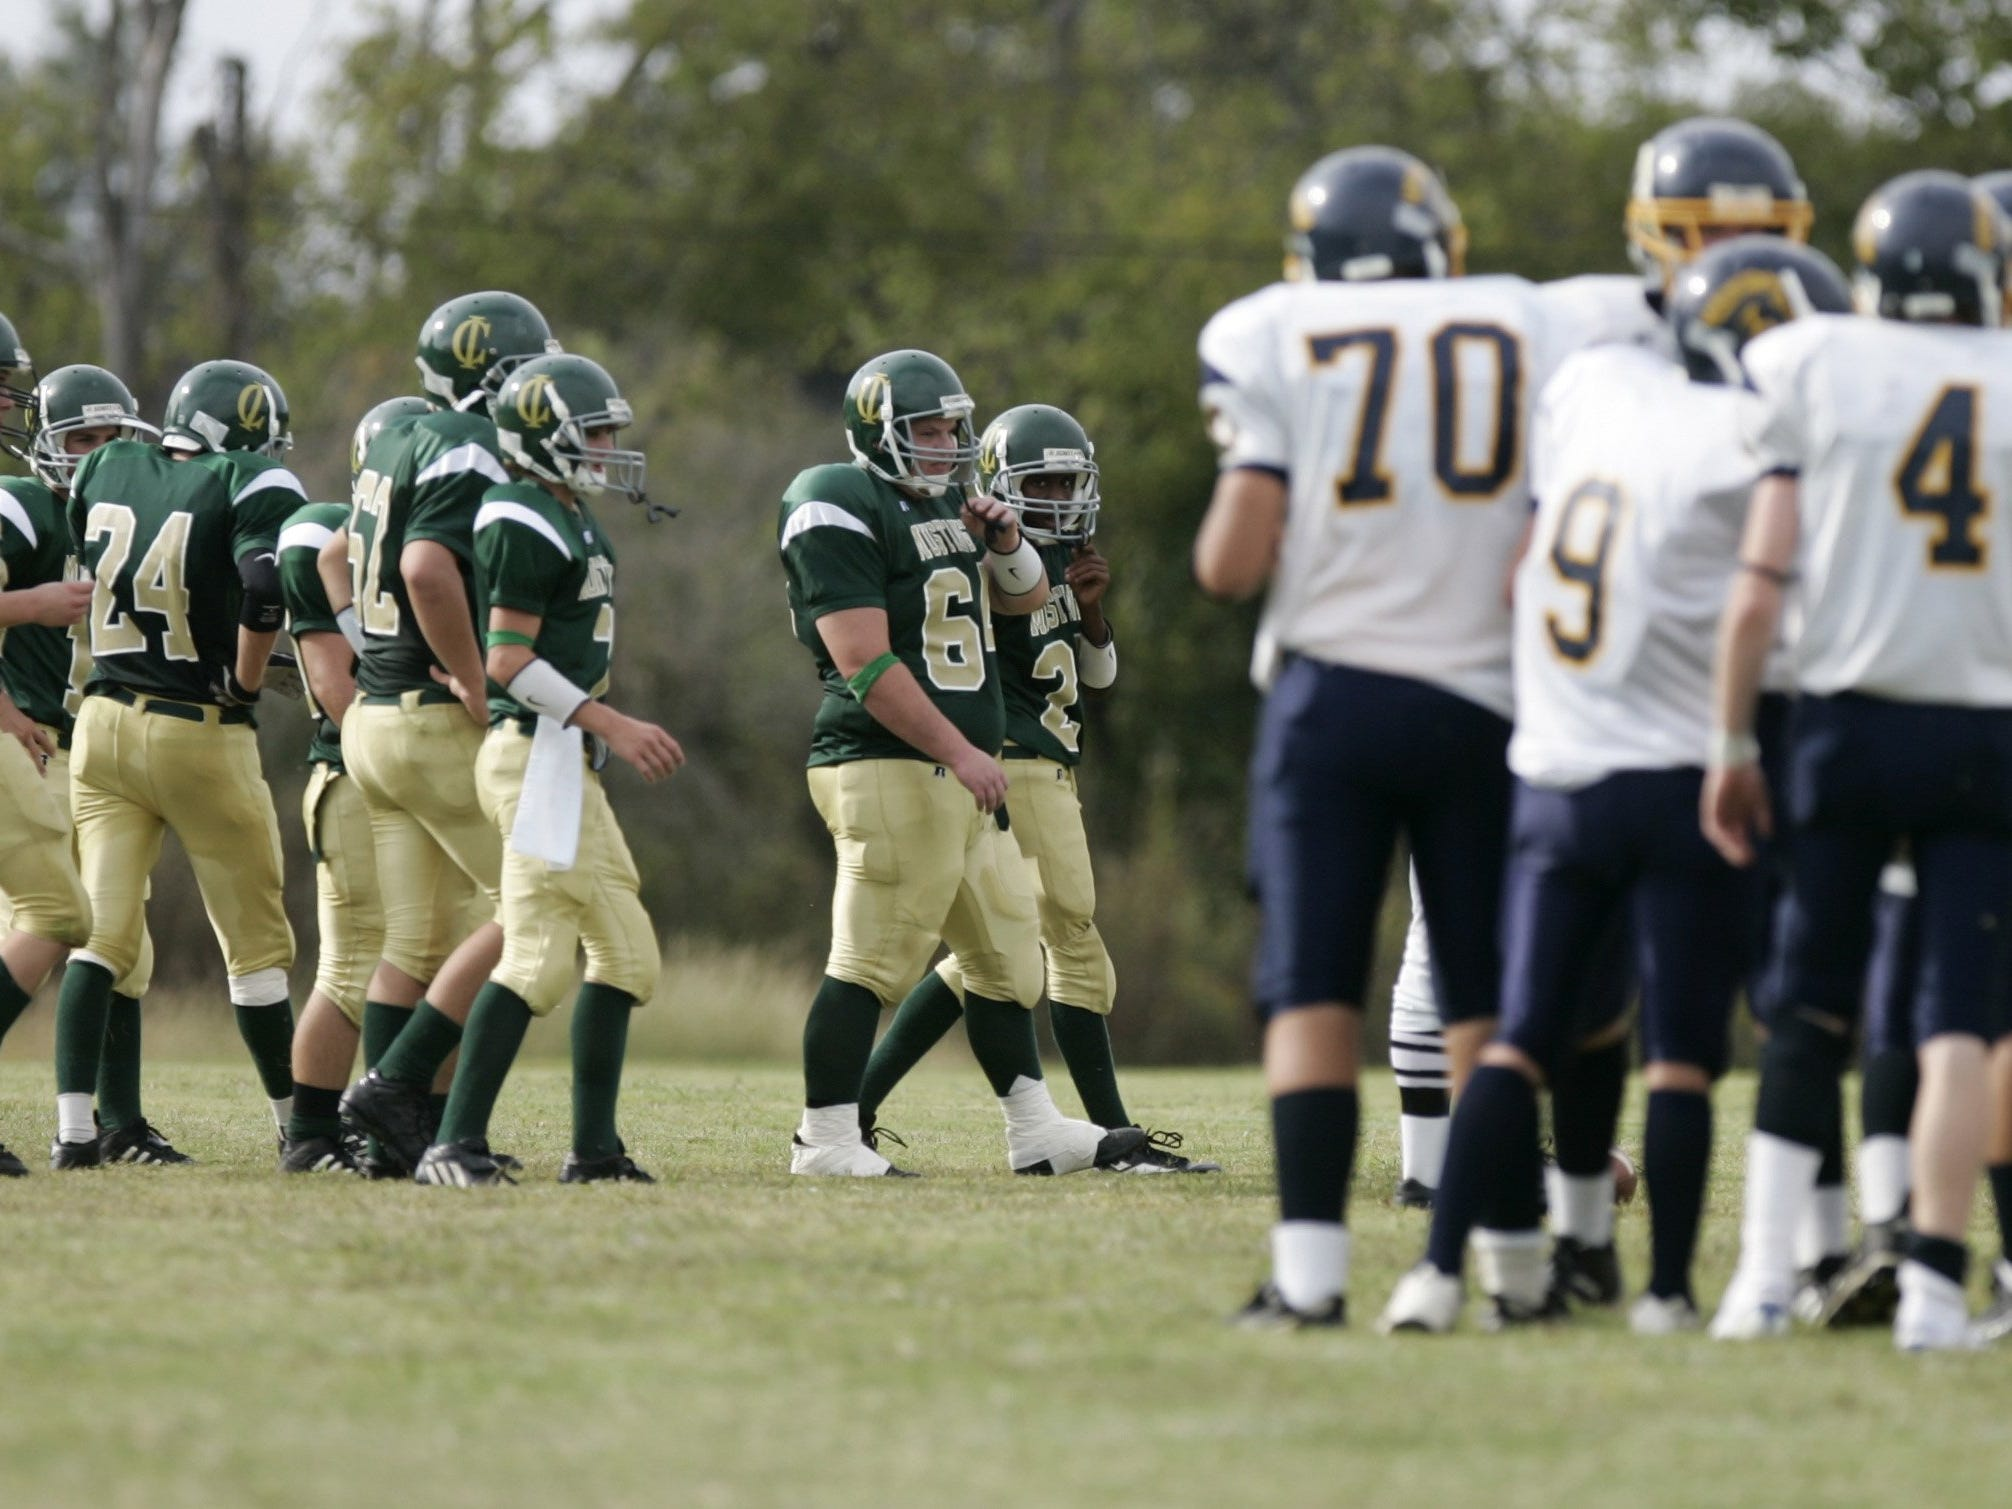 Currey Ingram Academy faces Christian Community in an 8-man football game at Currey Ingram in Brentwood in 2006.